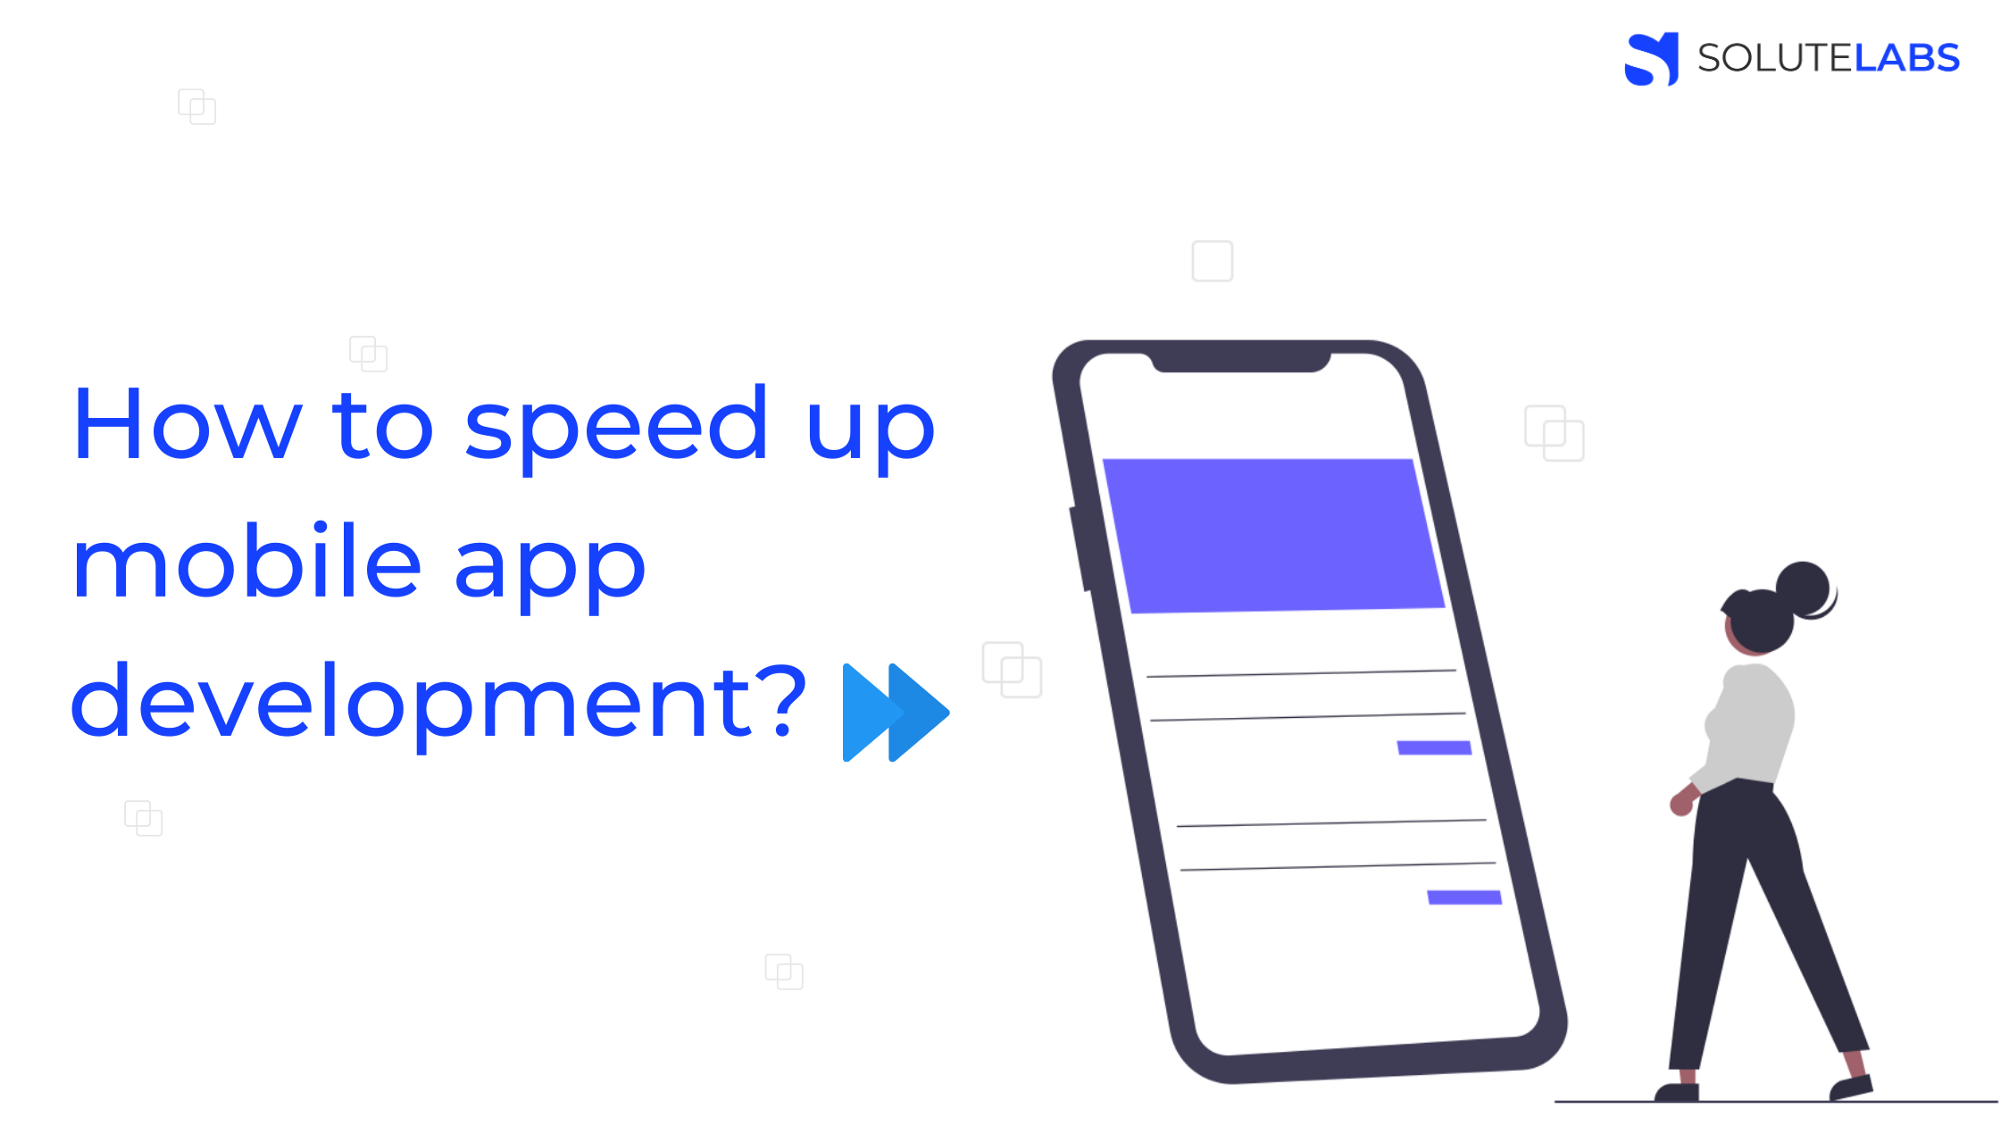 How to speed up mobile app development?